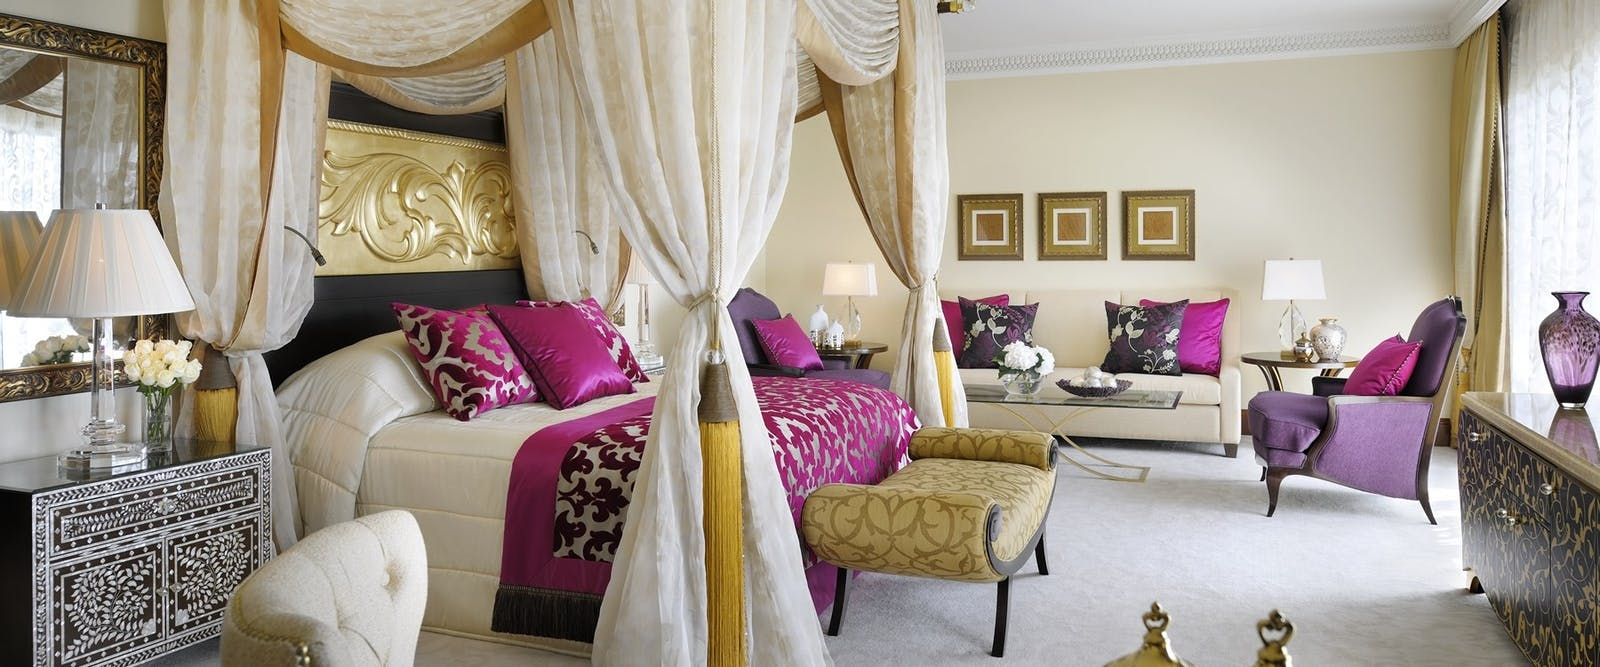 Royal Suite Master Bedroom at One&Only Royal Mirage - The Palace, Dubai